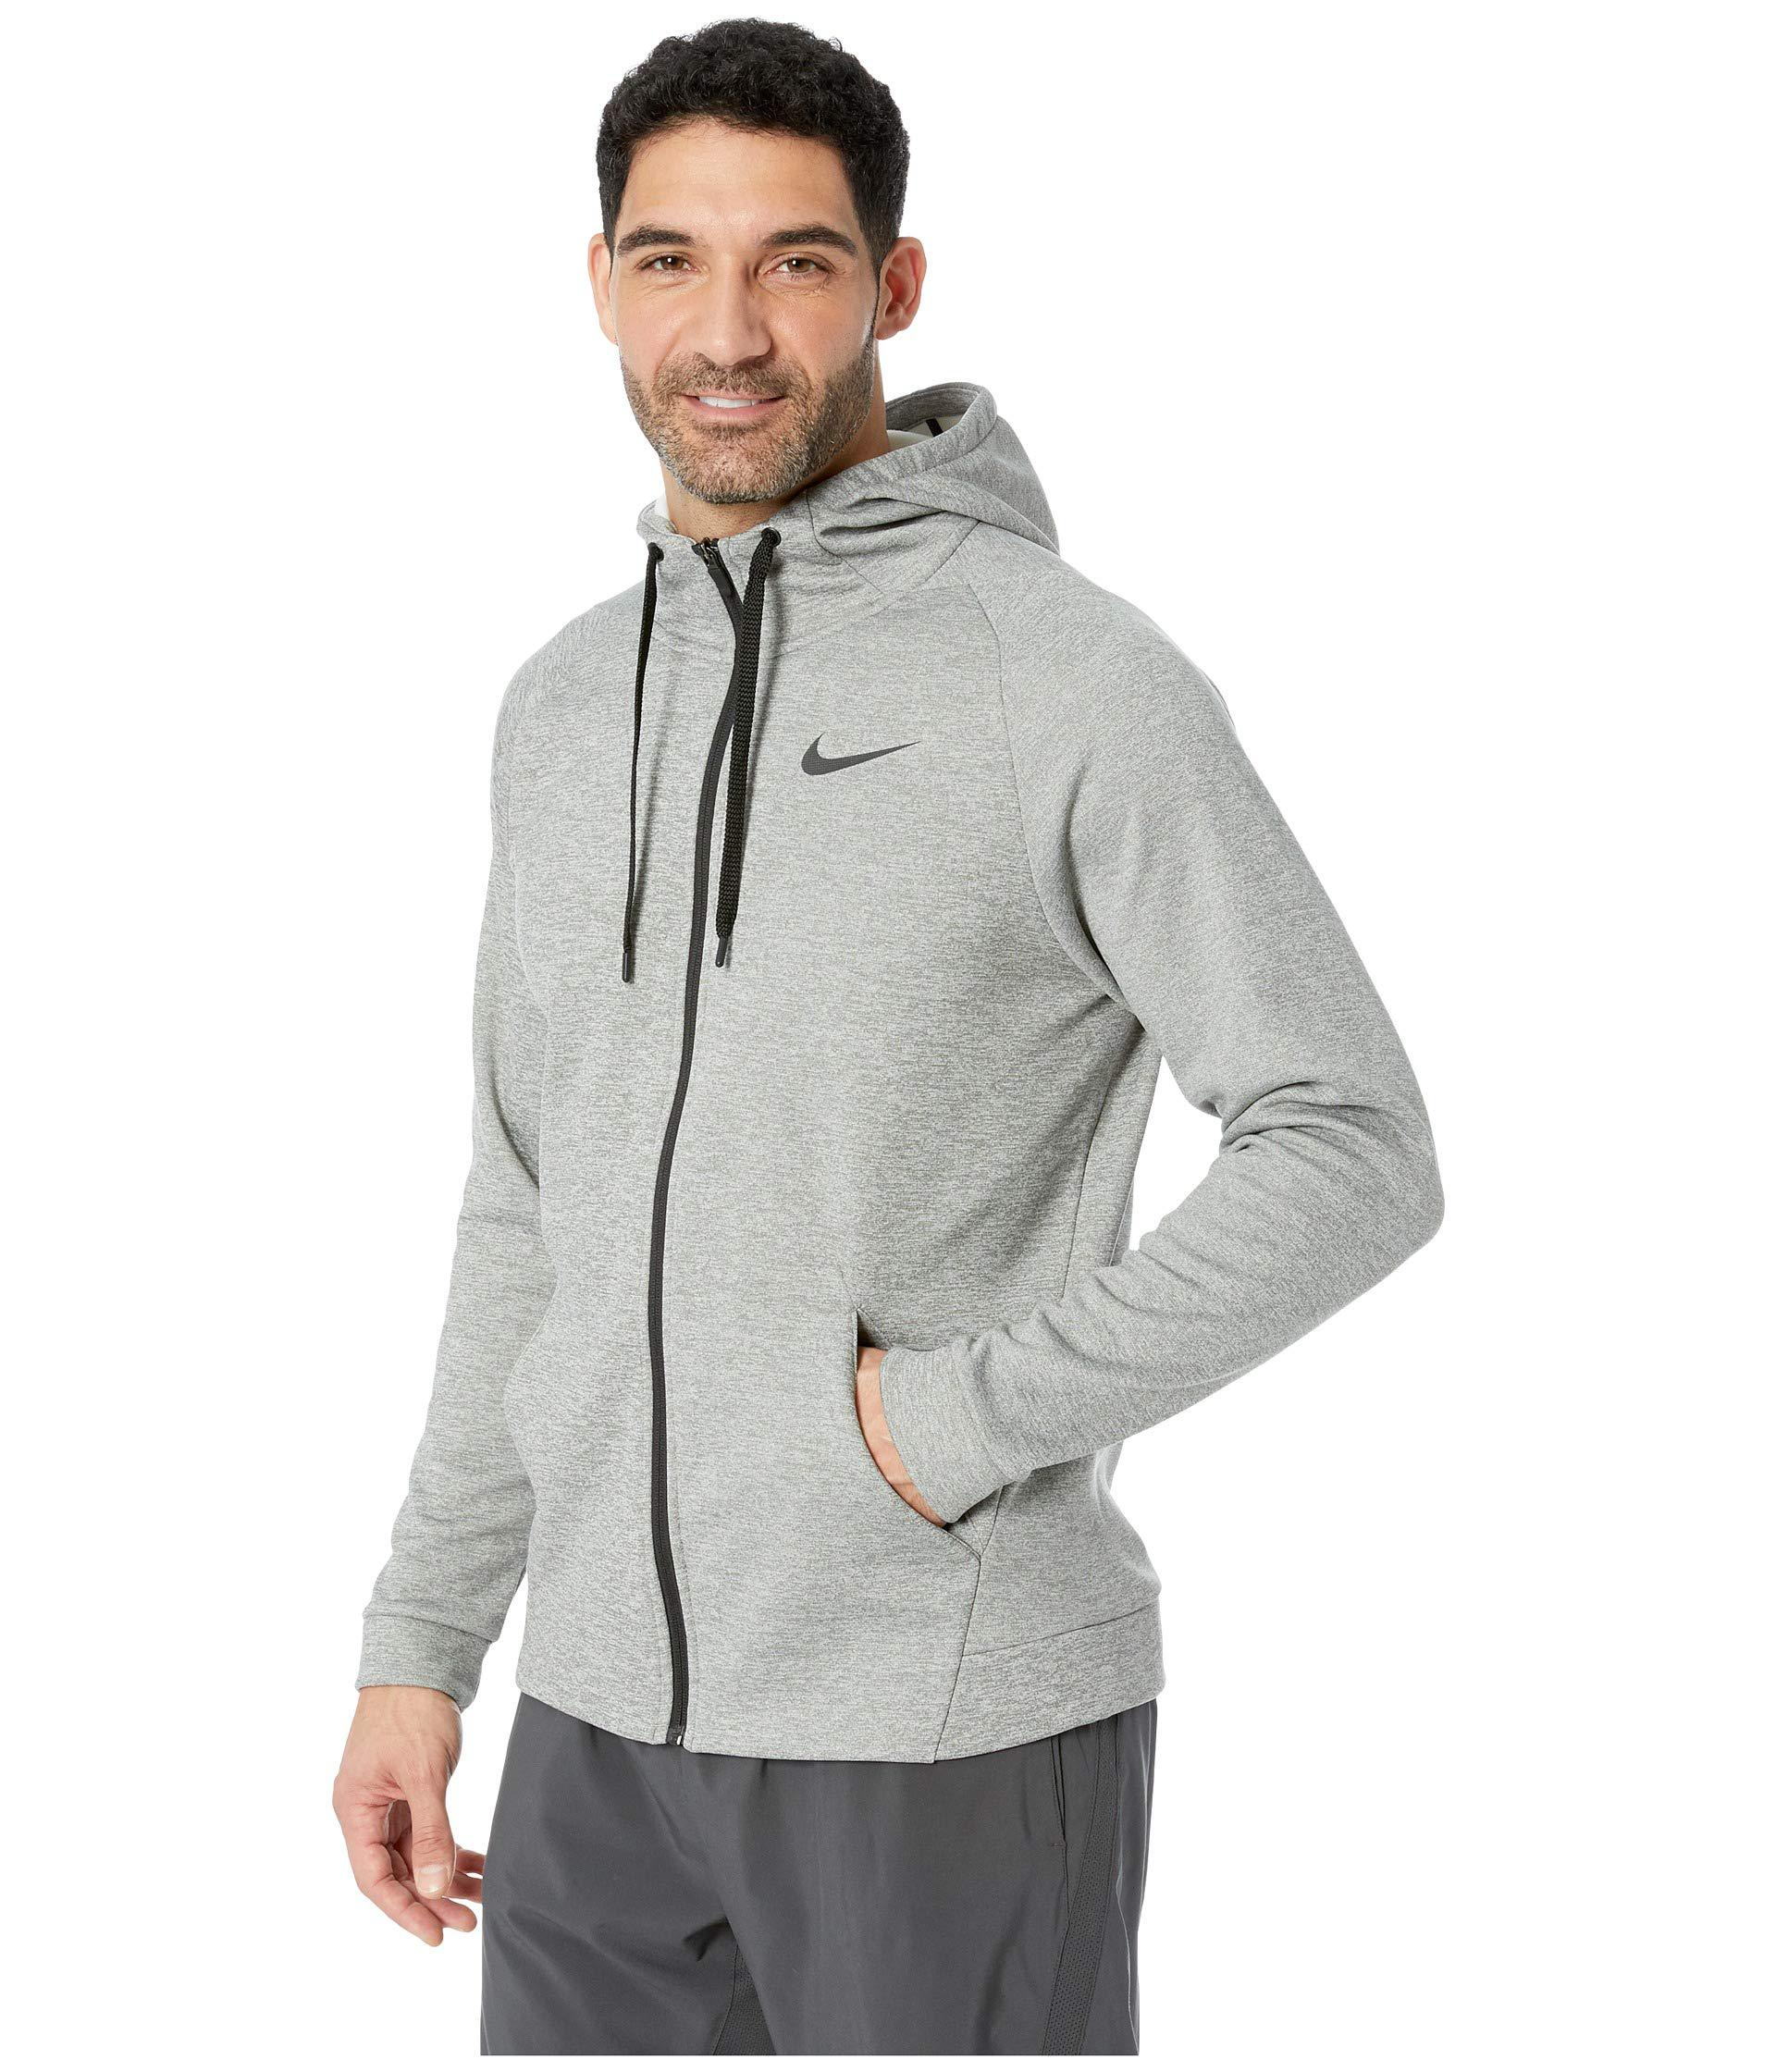 cce6f91051469 Lyst - Nike Dri-fit Therma Men s Full-zip Training Hoodie (white black) Men s  Sweatshirt in Gray for Men